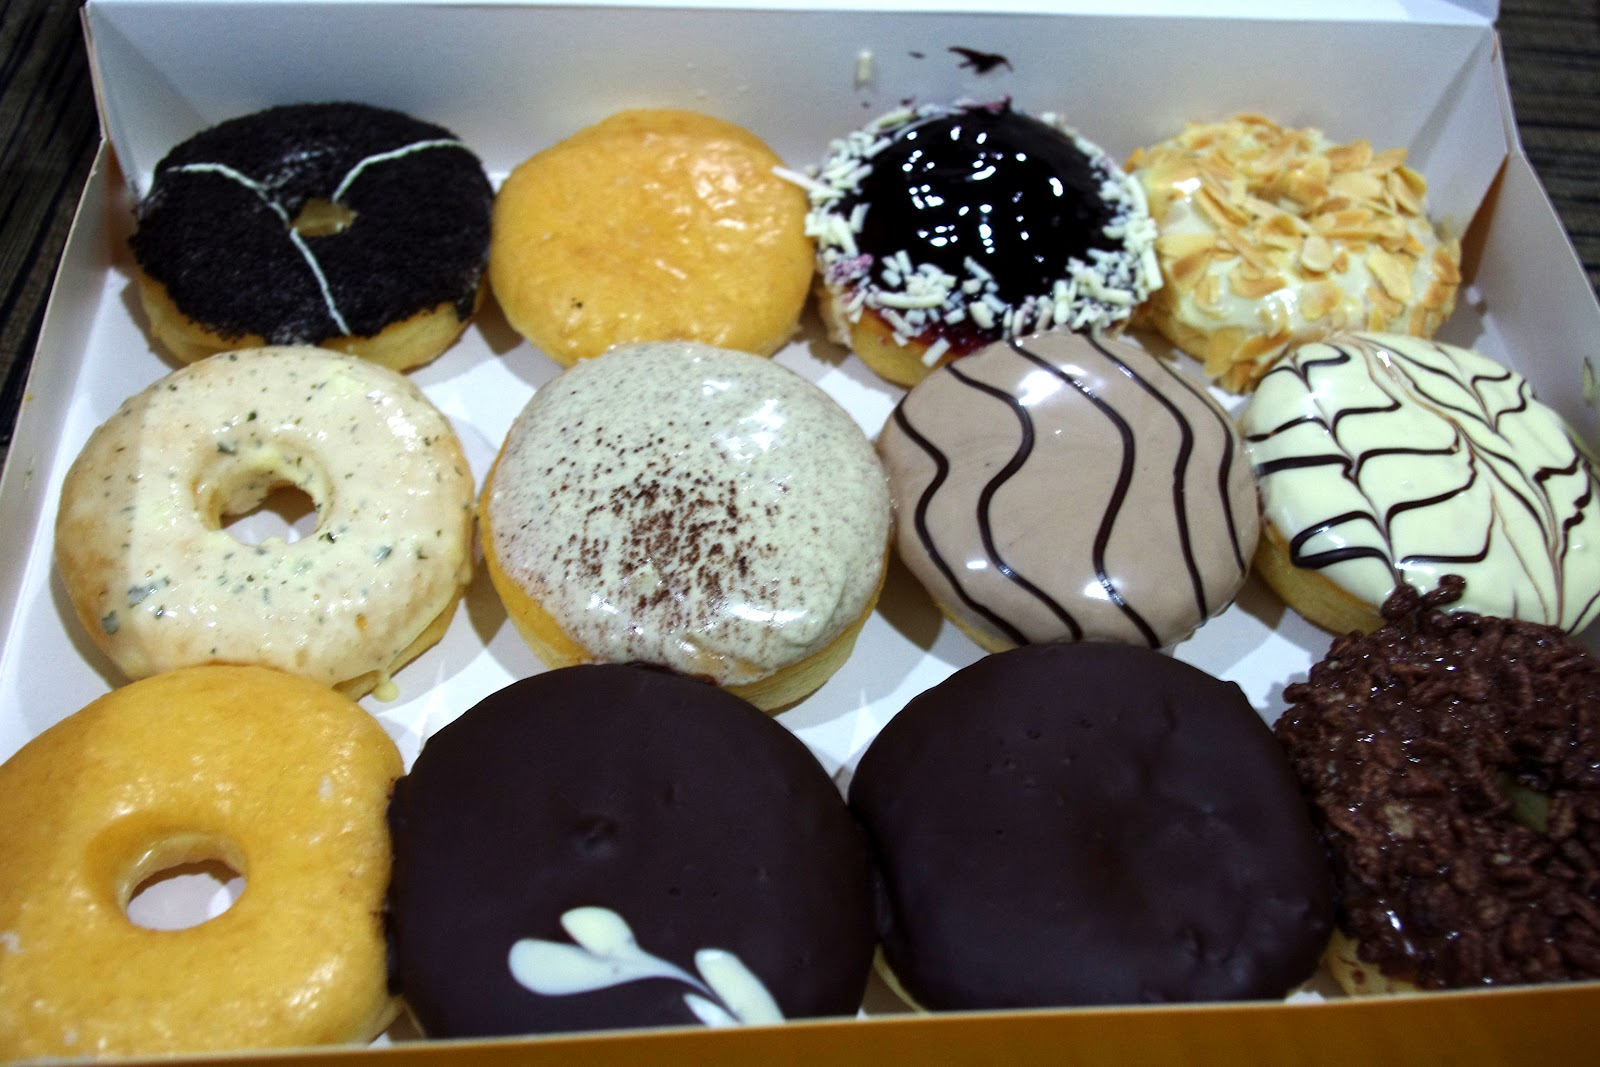 J.Co Donuts Philippines – Asian Donuts at Its Best